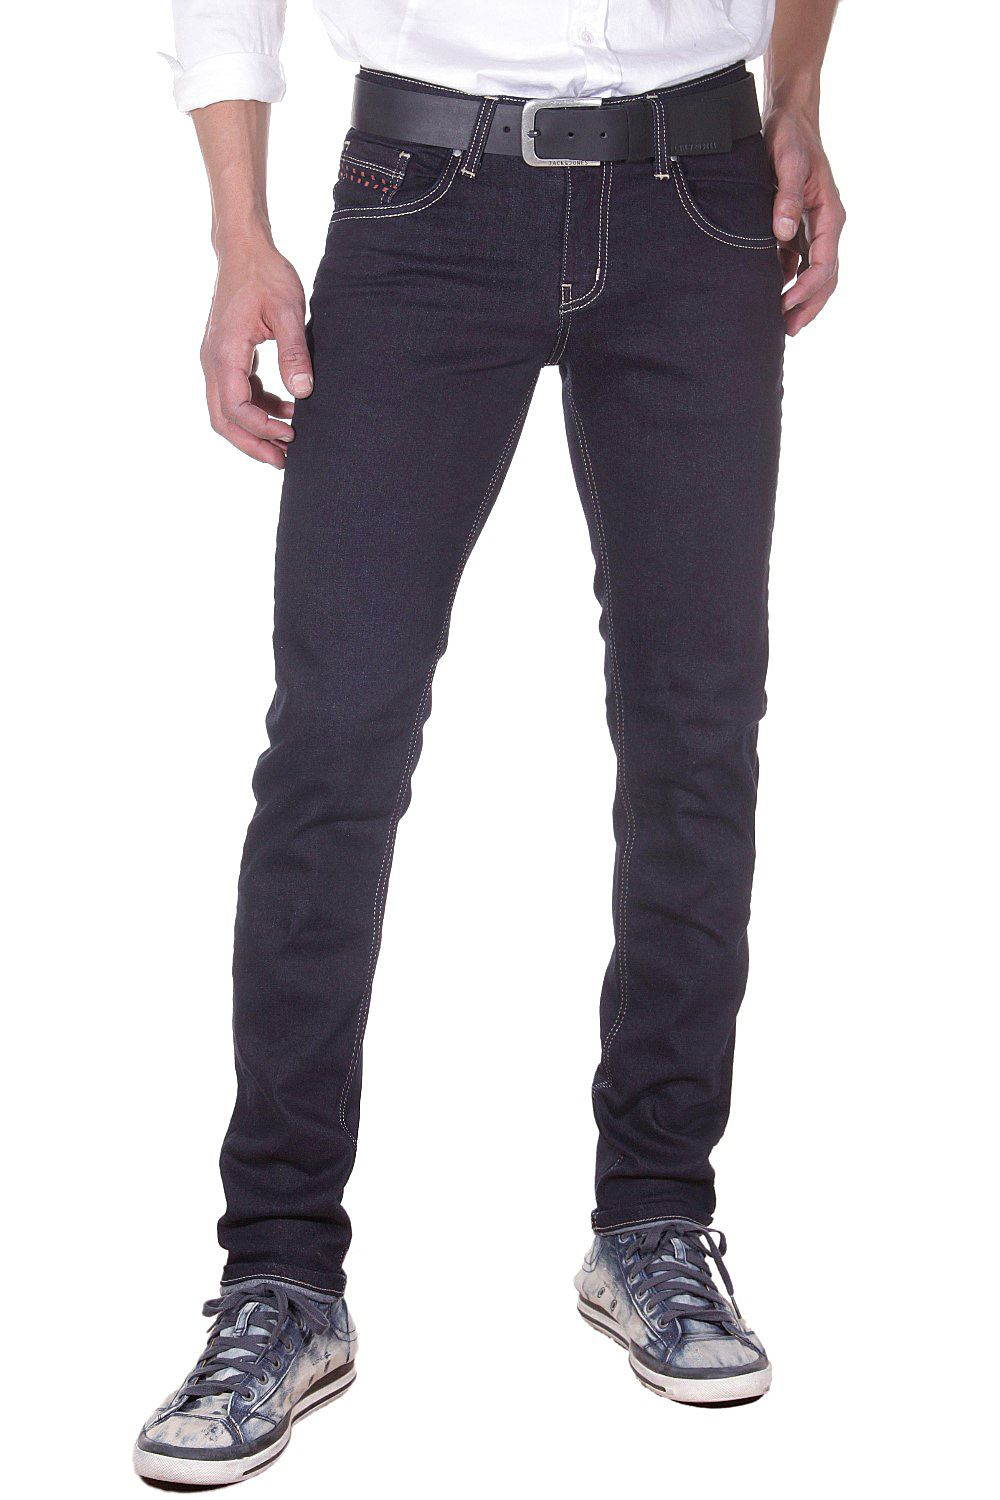 BRIGHT JEANS Bright Jeans Hüftjeans (Stretch) Slim Fit